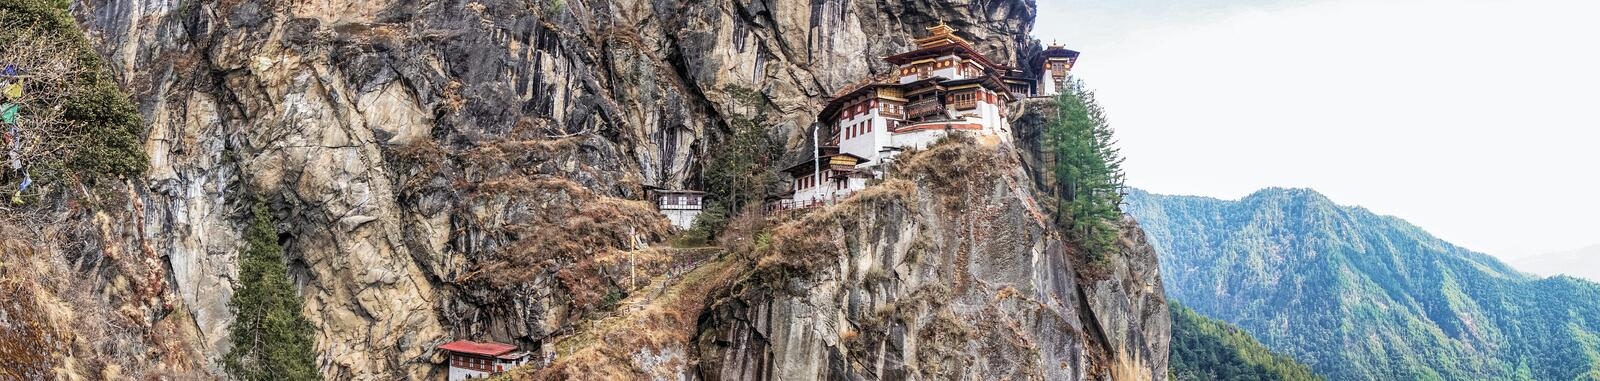 Taktshang Goemba or Tiger's nest Temple on mountain in Panorama view. stock photography